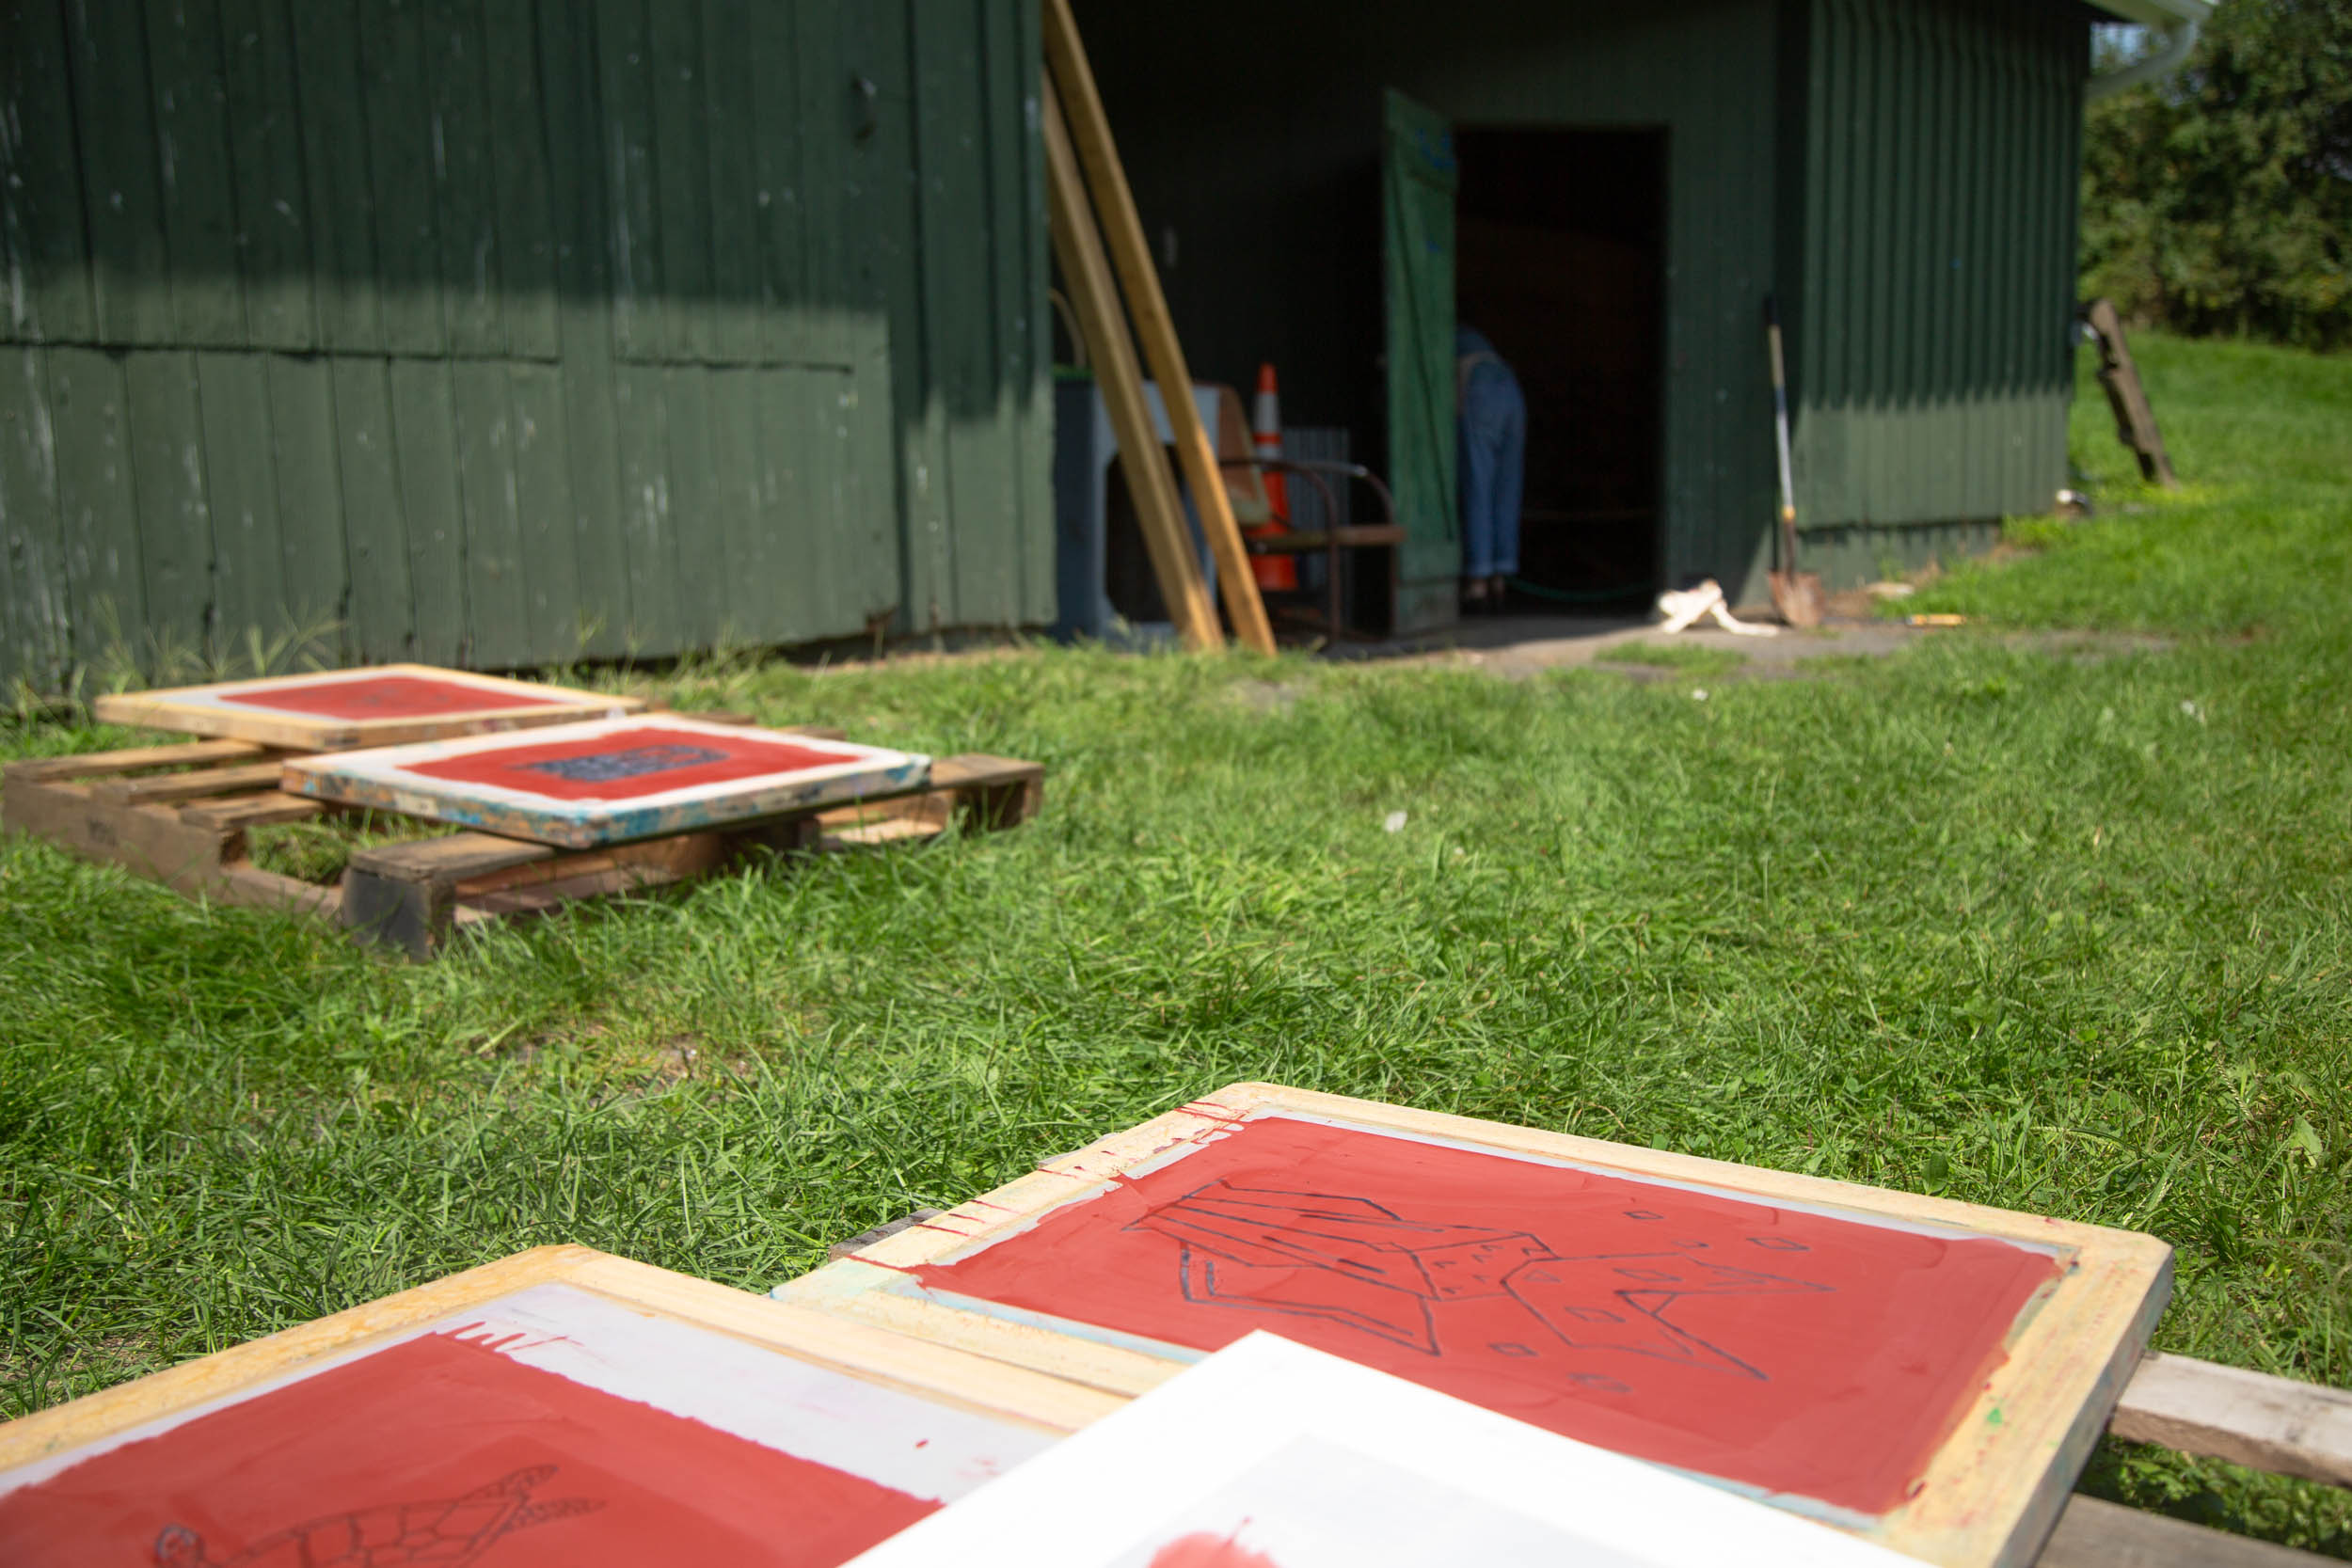 wassaic-project-education-teen-screenprinting-camp-2018-08-15-12-23-49.jpg